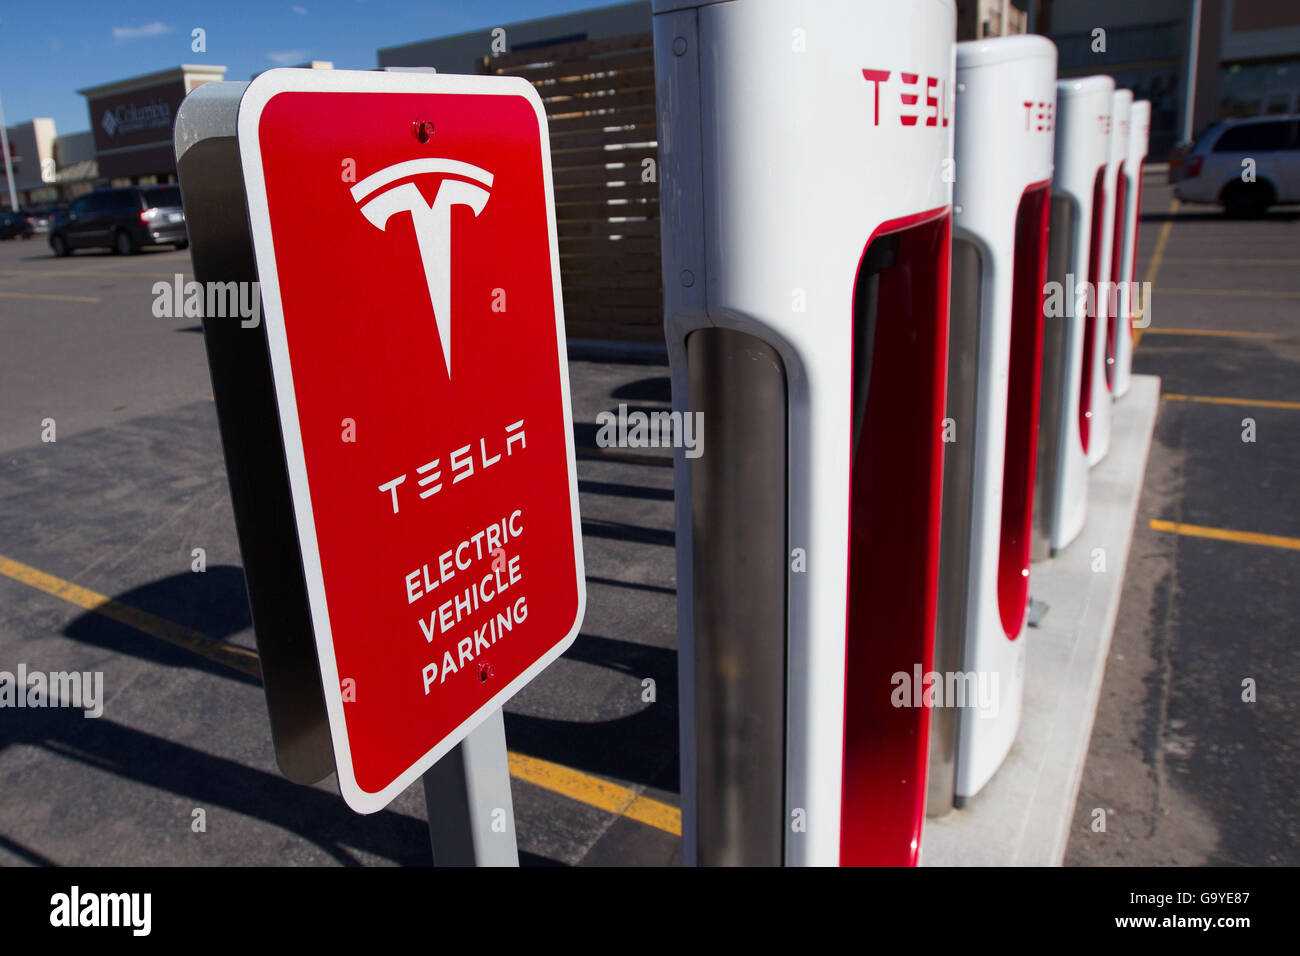 Kingston, Ontario, Canada. 3rd Nov, 2015. Tesla Motors recharging units at King's Cross outlet mall in in Kingston, Stock Photo